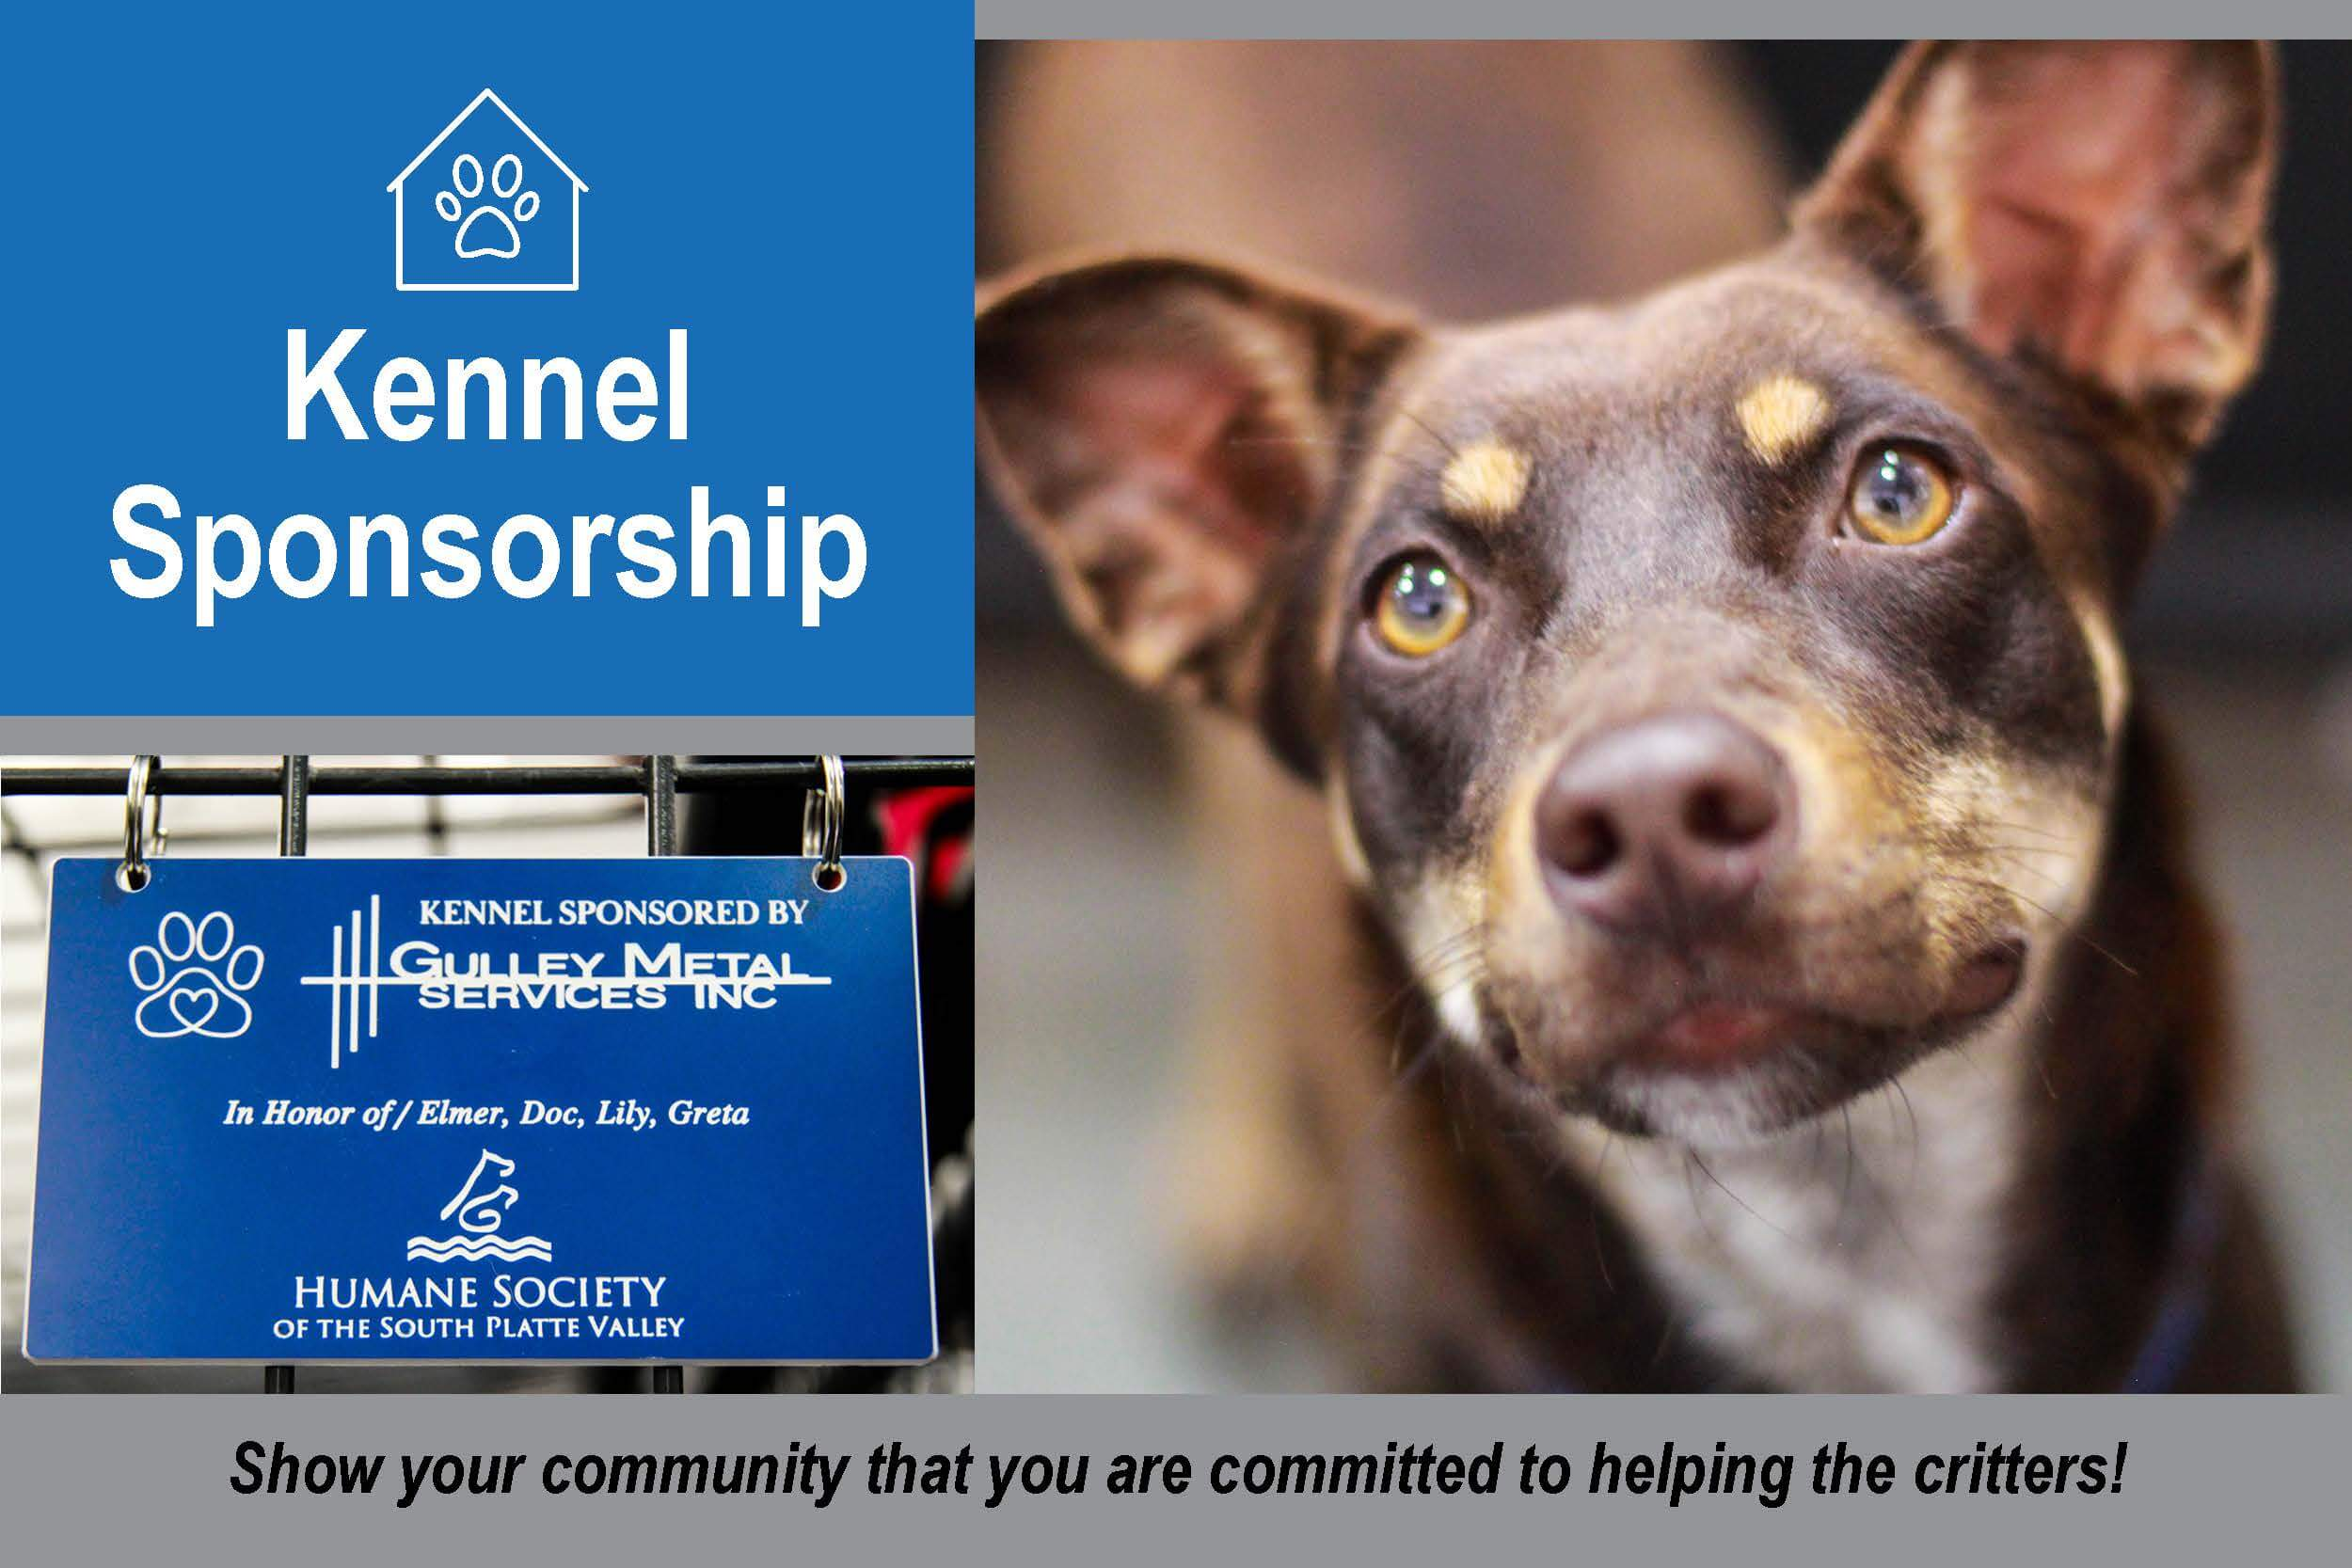 Sponsor a Kennal at HSSPV